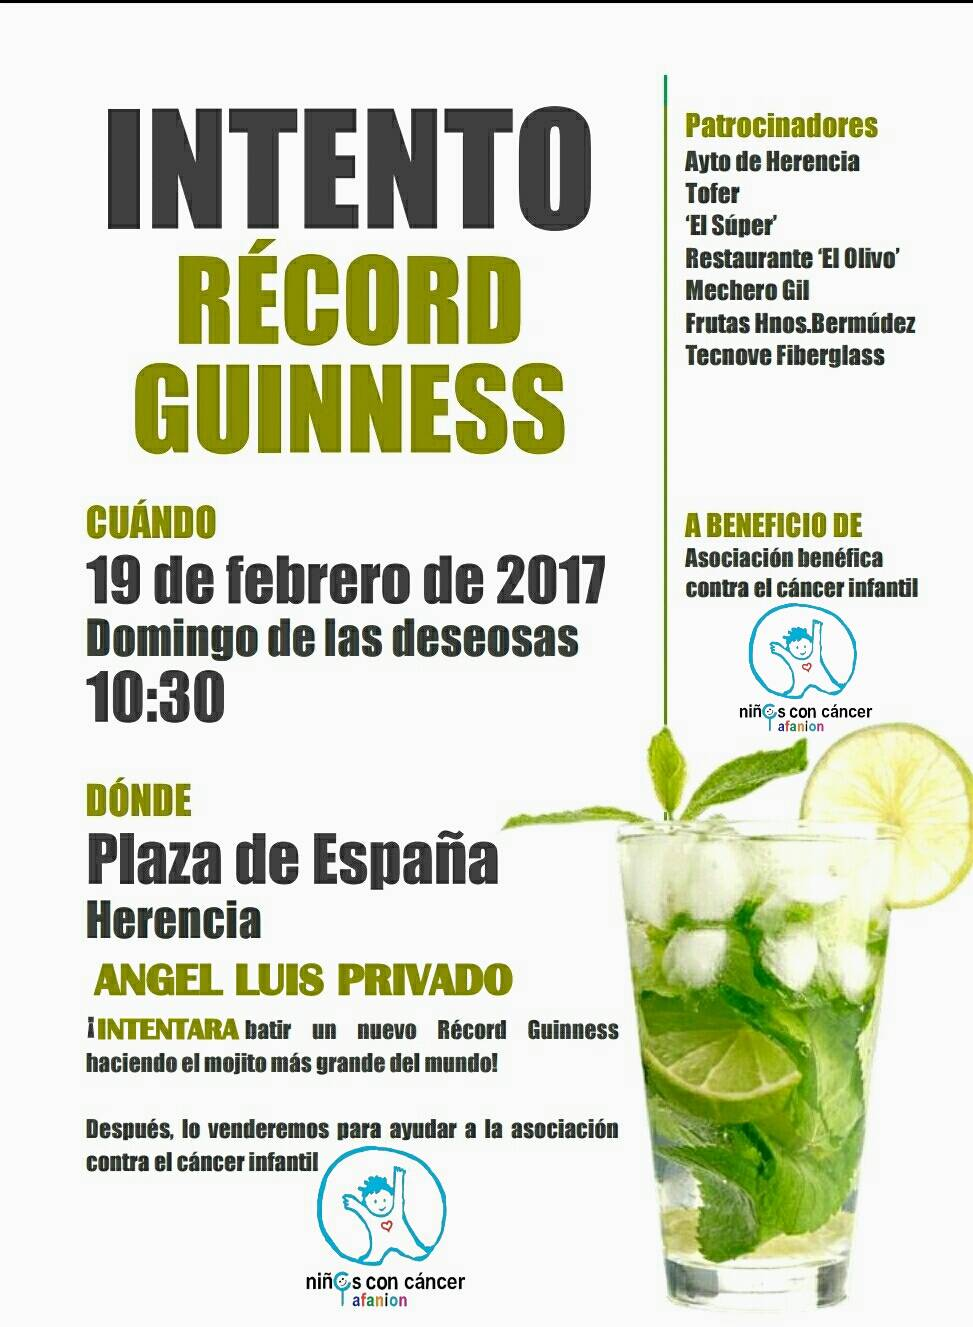 intento de record guinness haciendo el mojito mas grande - Ángel Luis Privado intentará superar un récord Guinness en Herencia